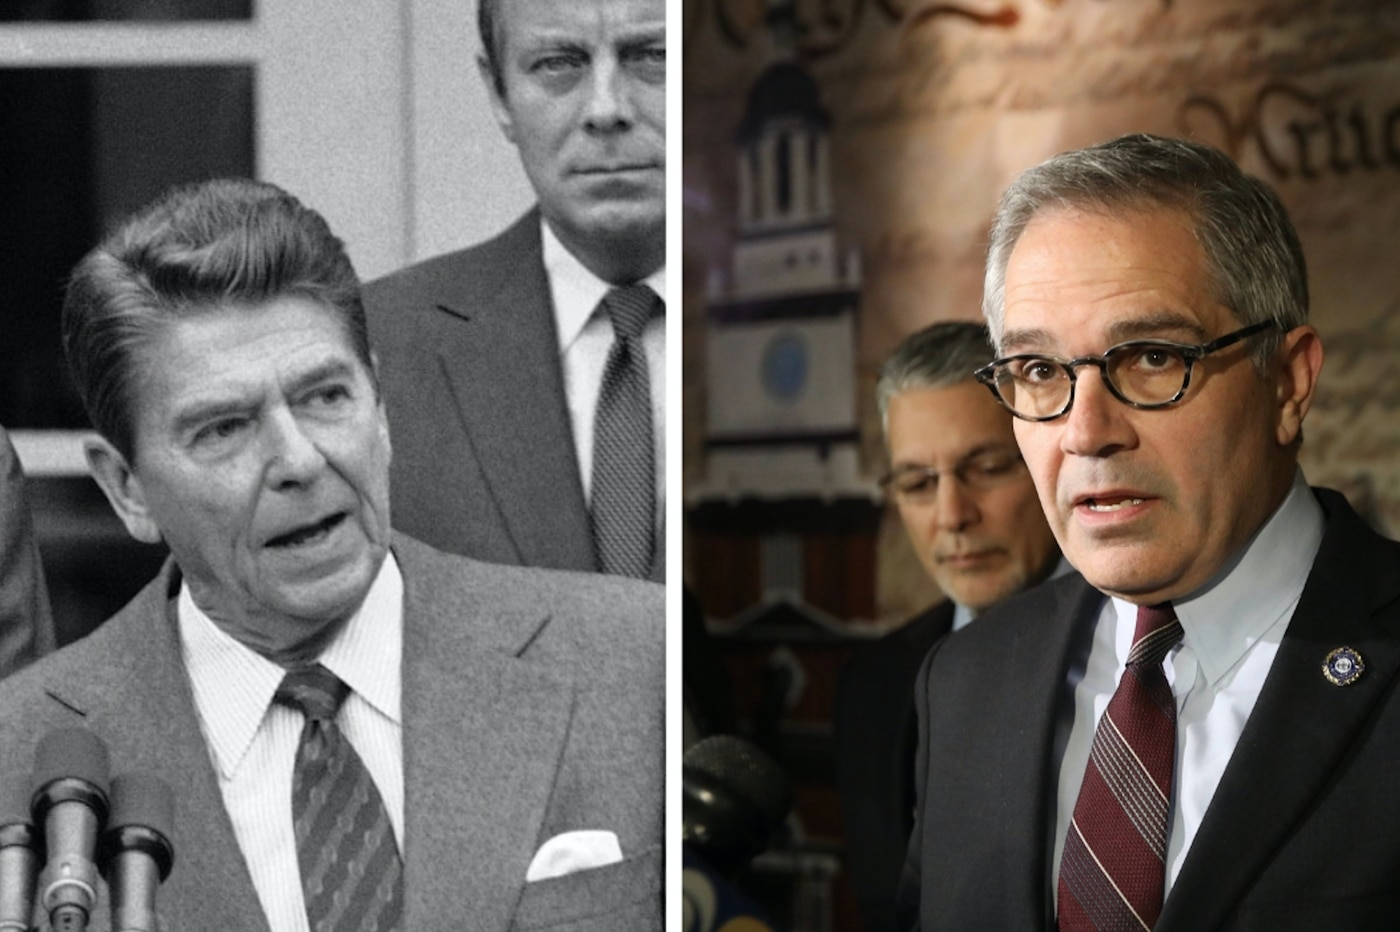 DA Krasner should take a page from Reagan's playbook: Cut budgets to enshrine your legacy | Opinion